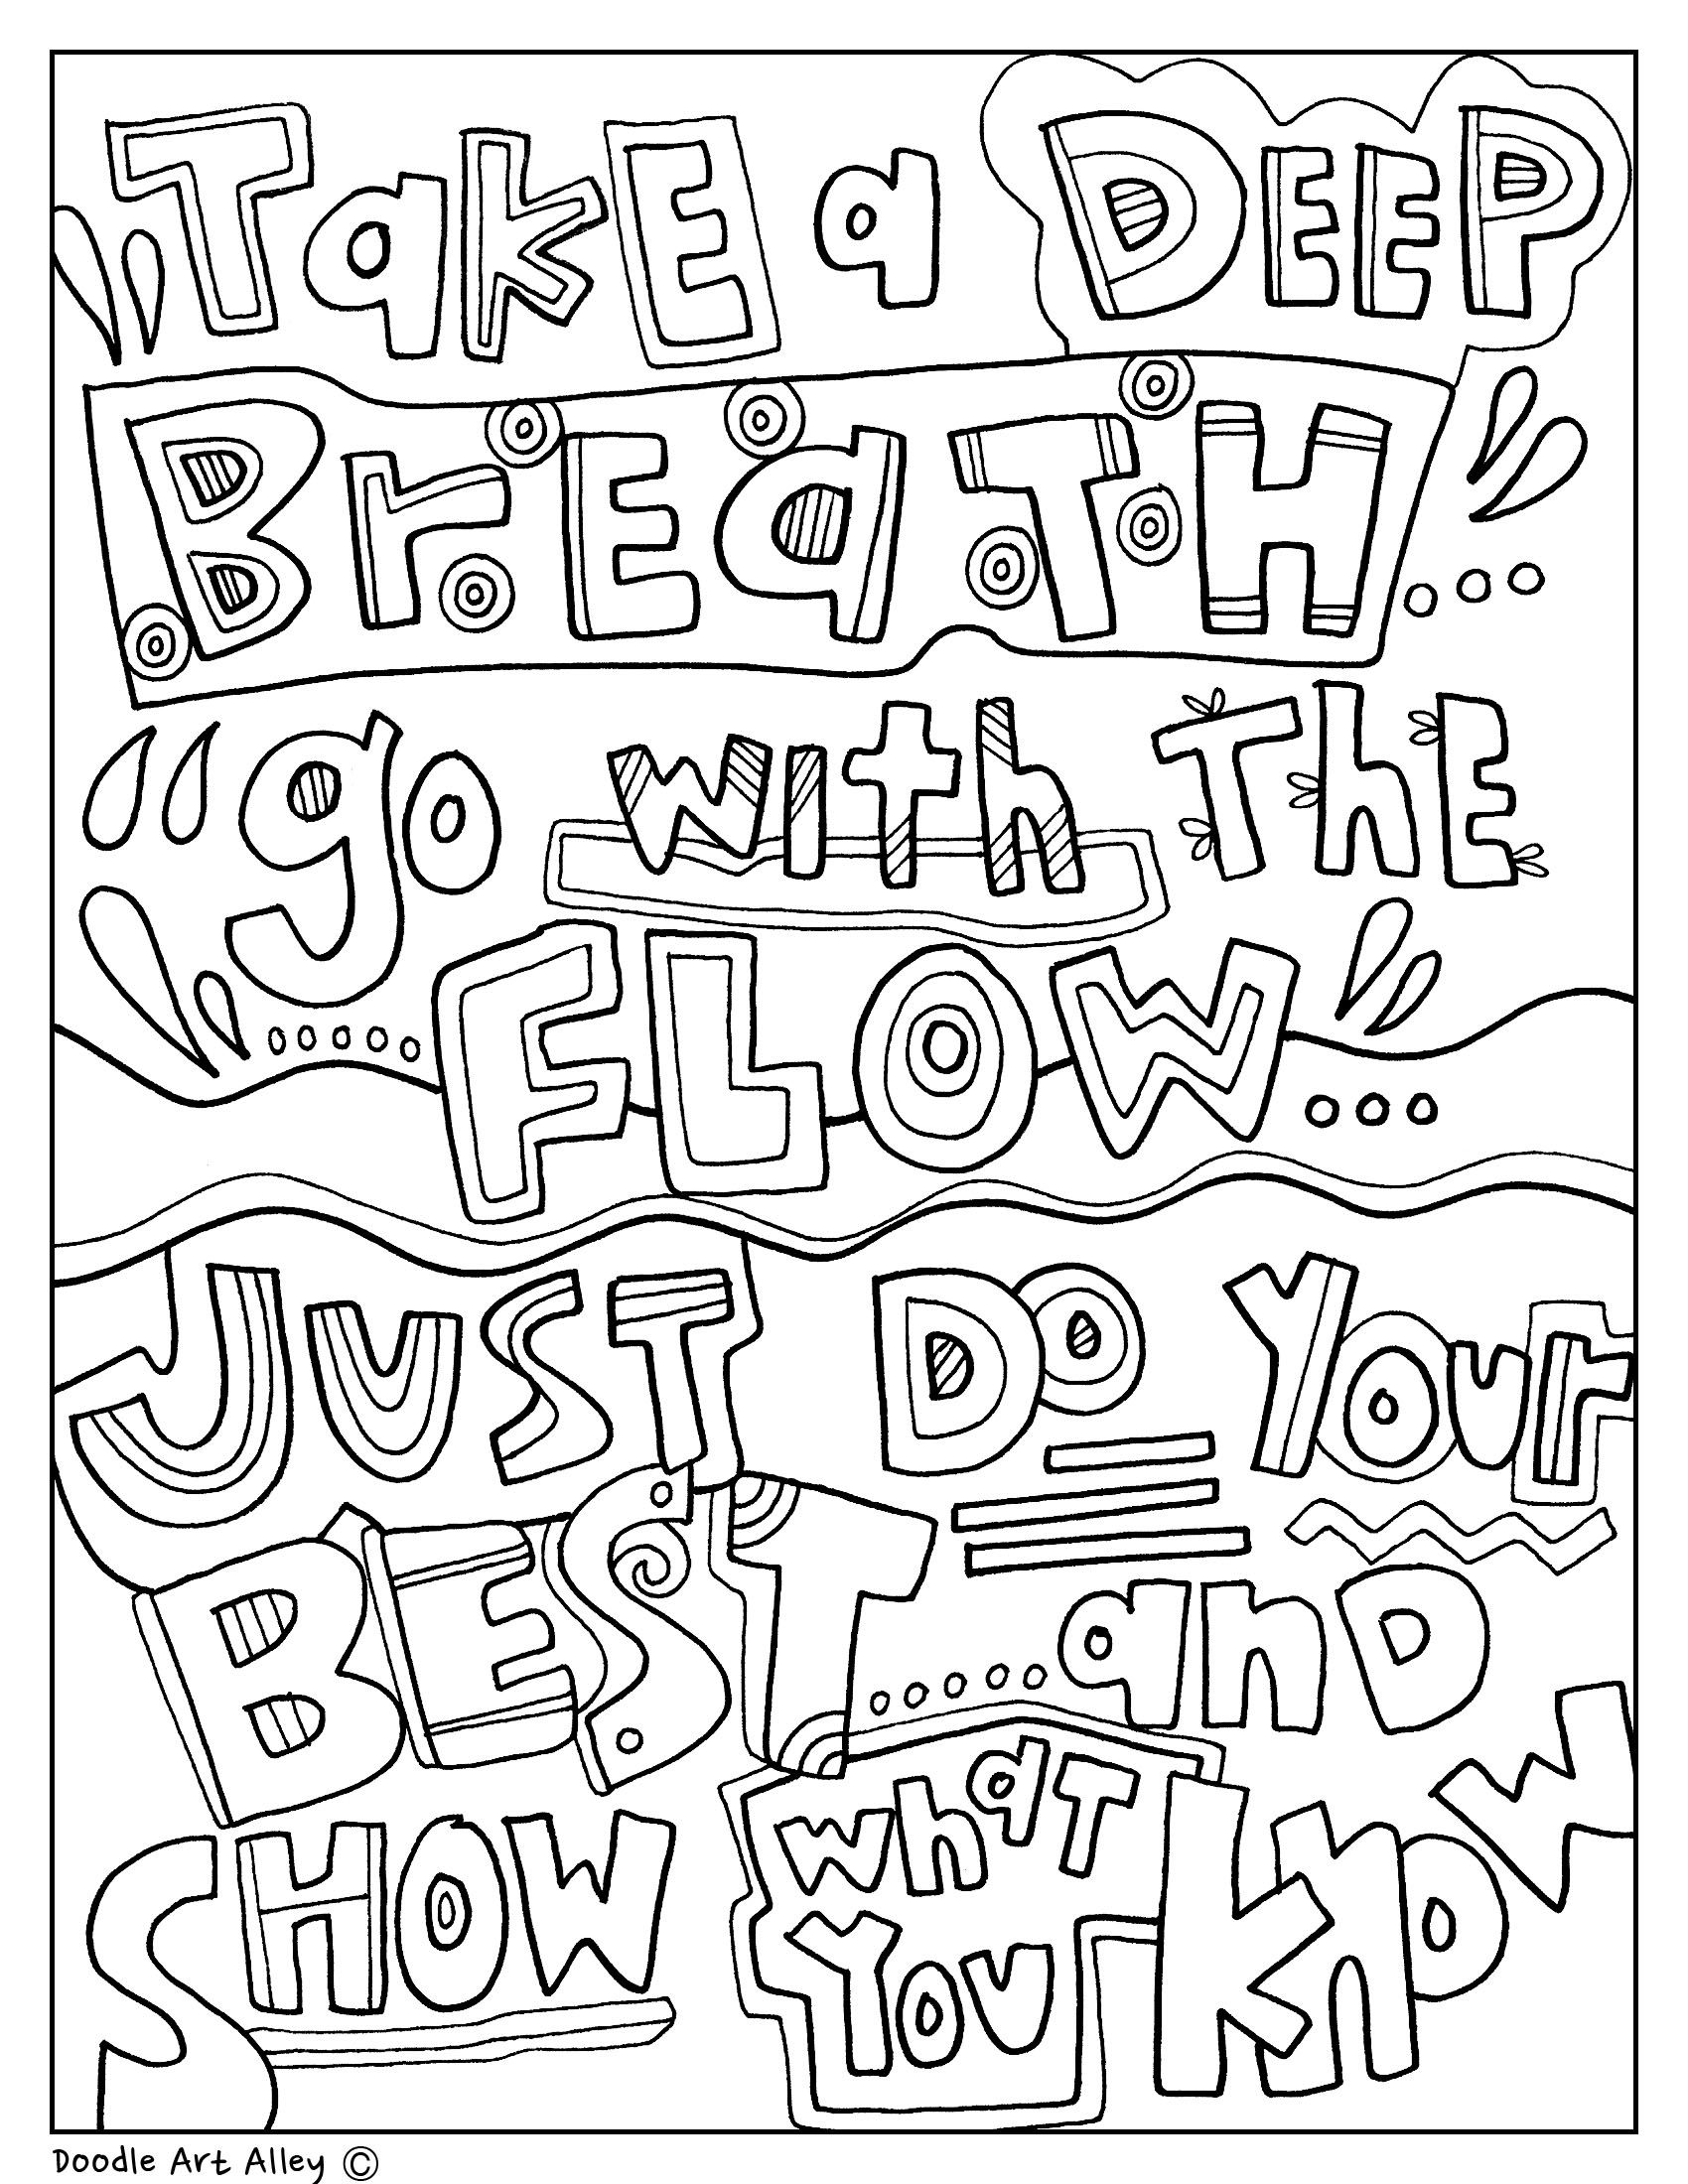 Testing Encouragement Coloring Pages. Classroom Doodles